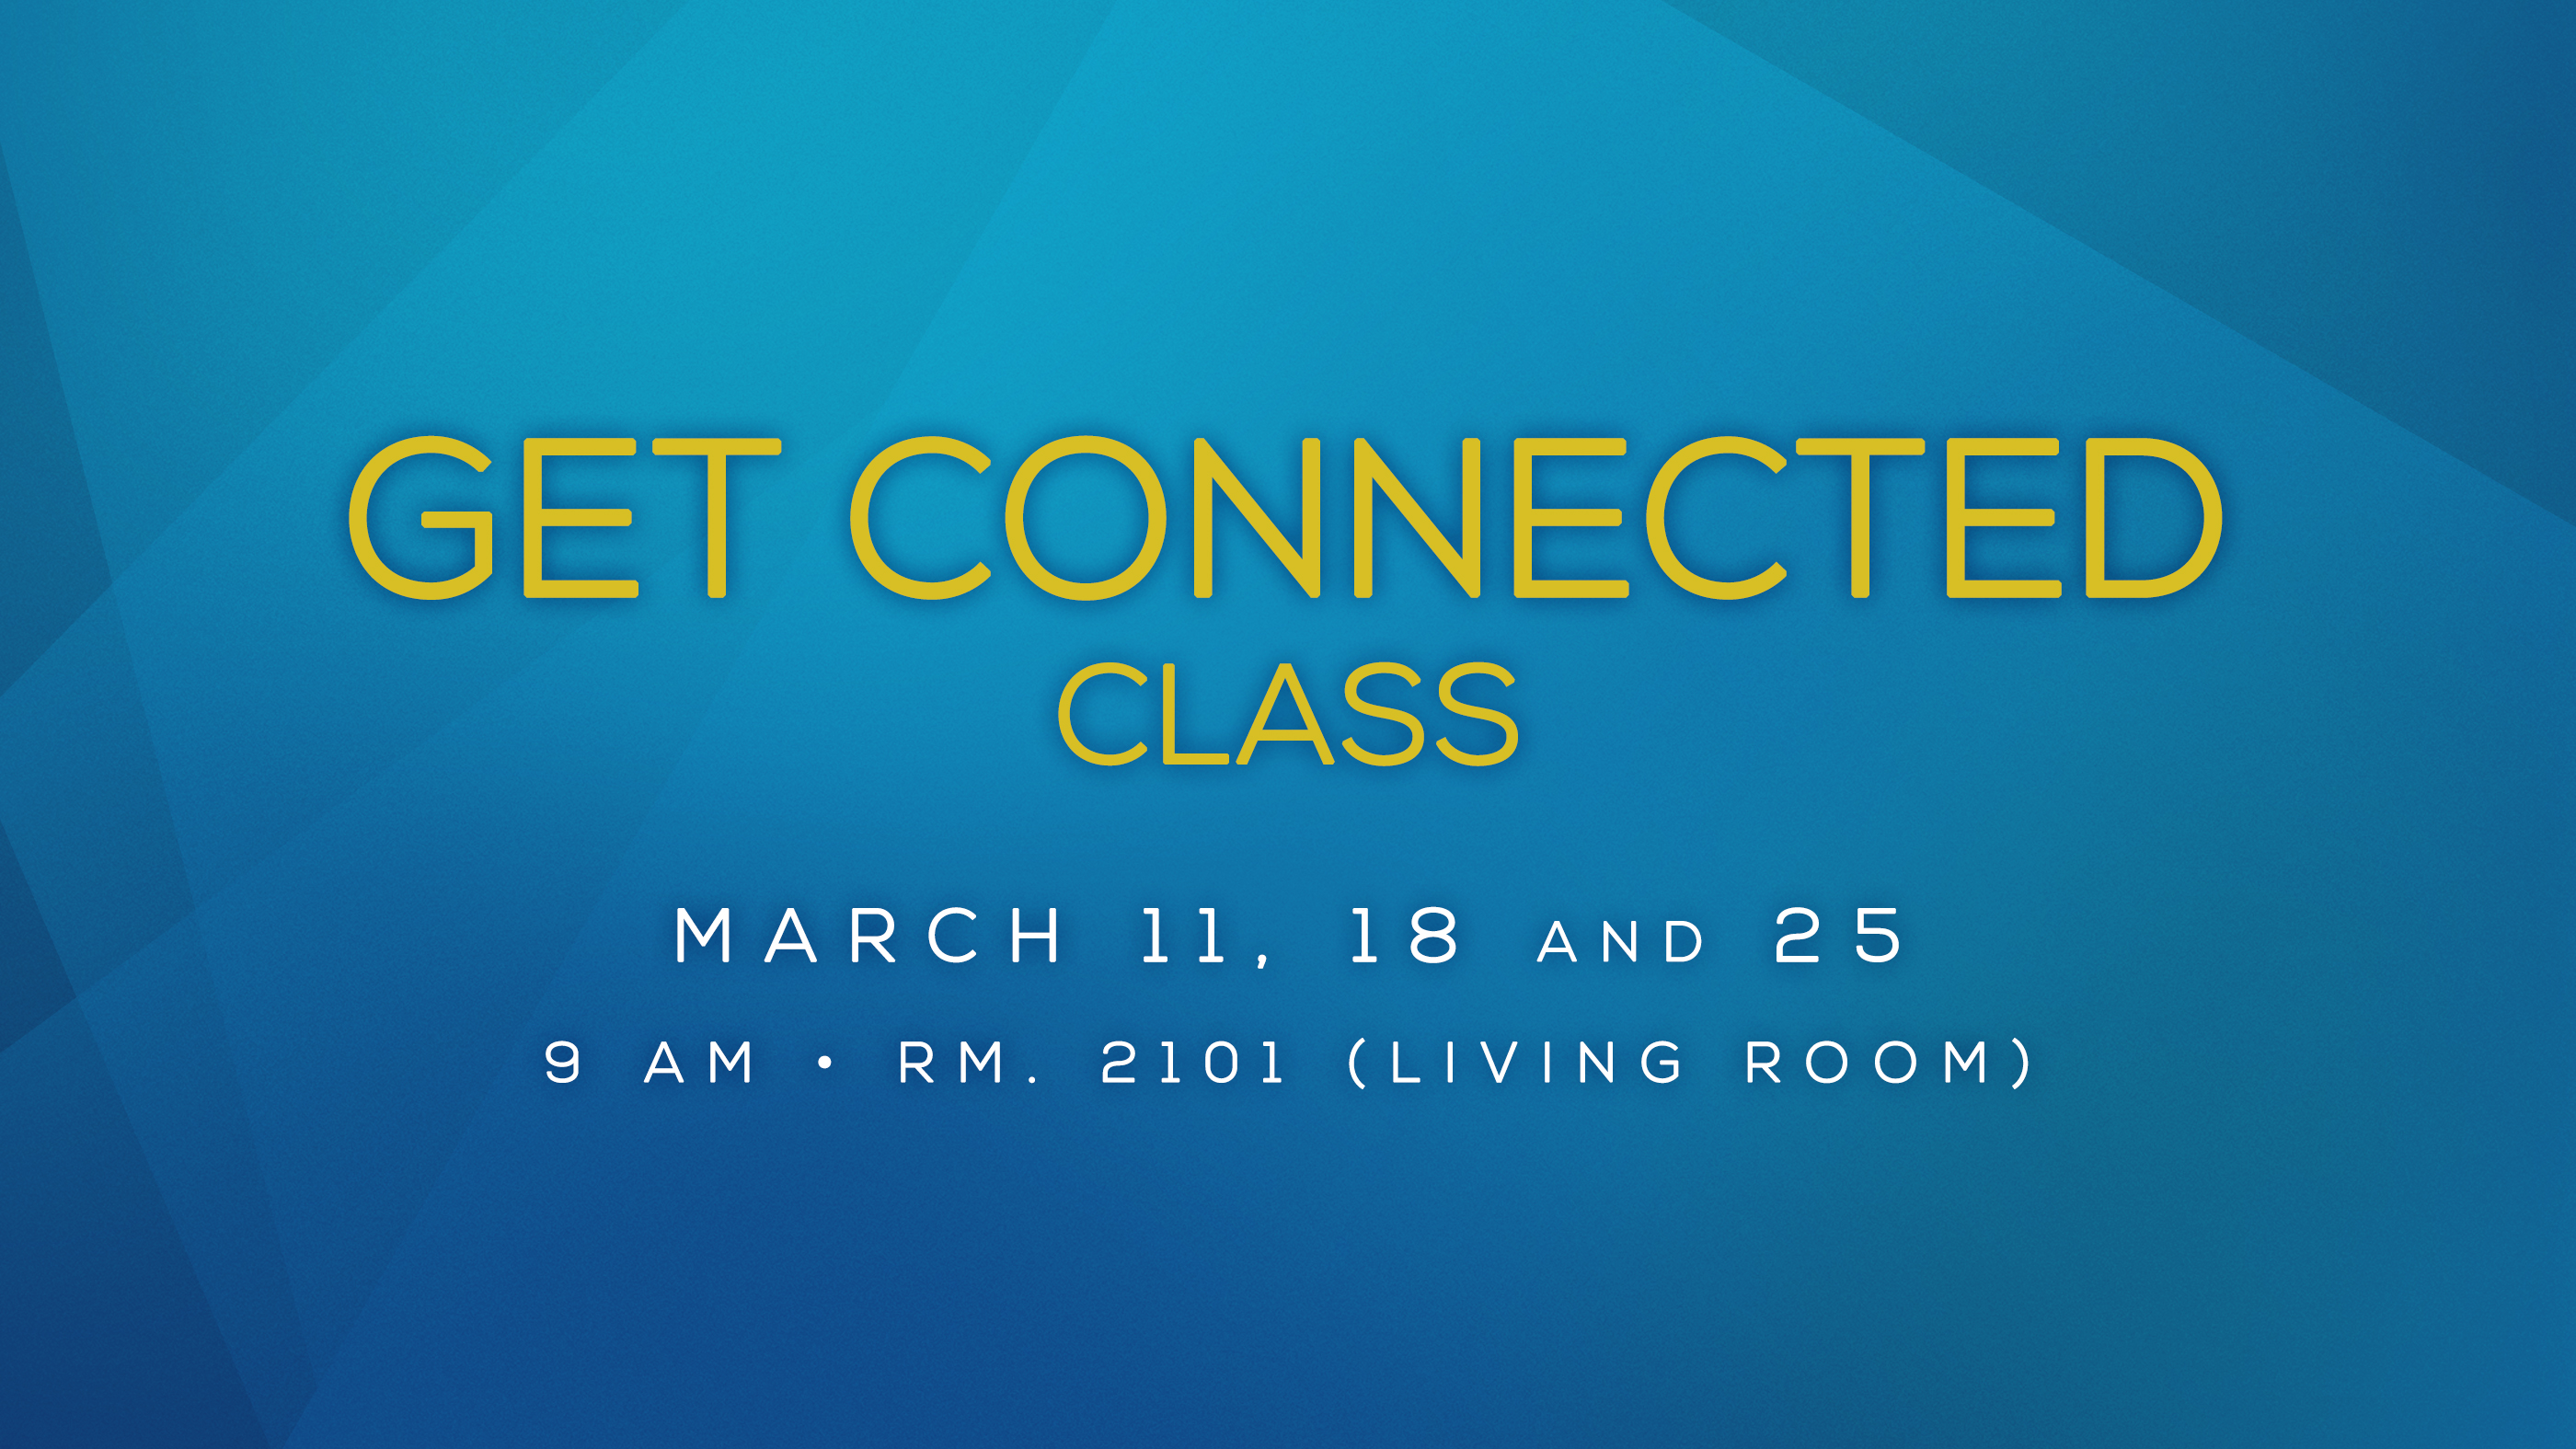 Get Connected Class